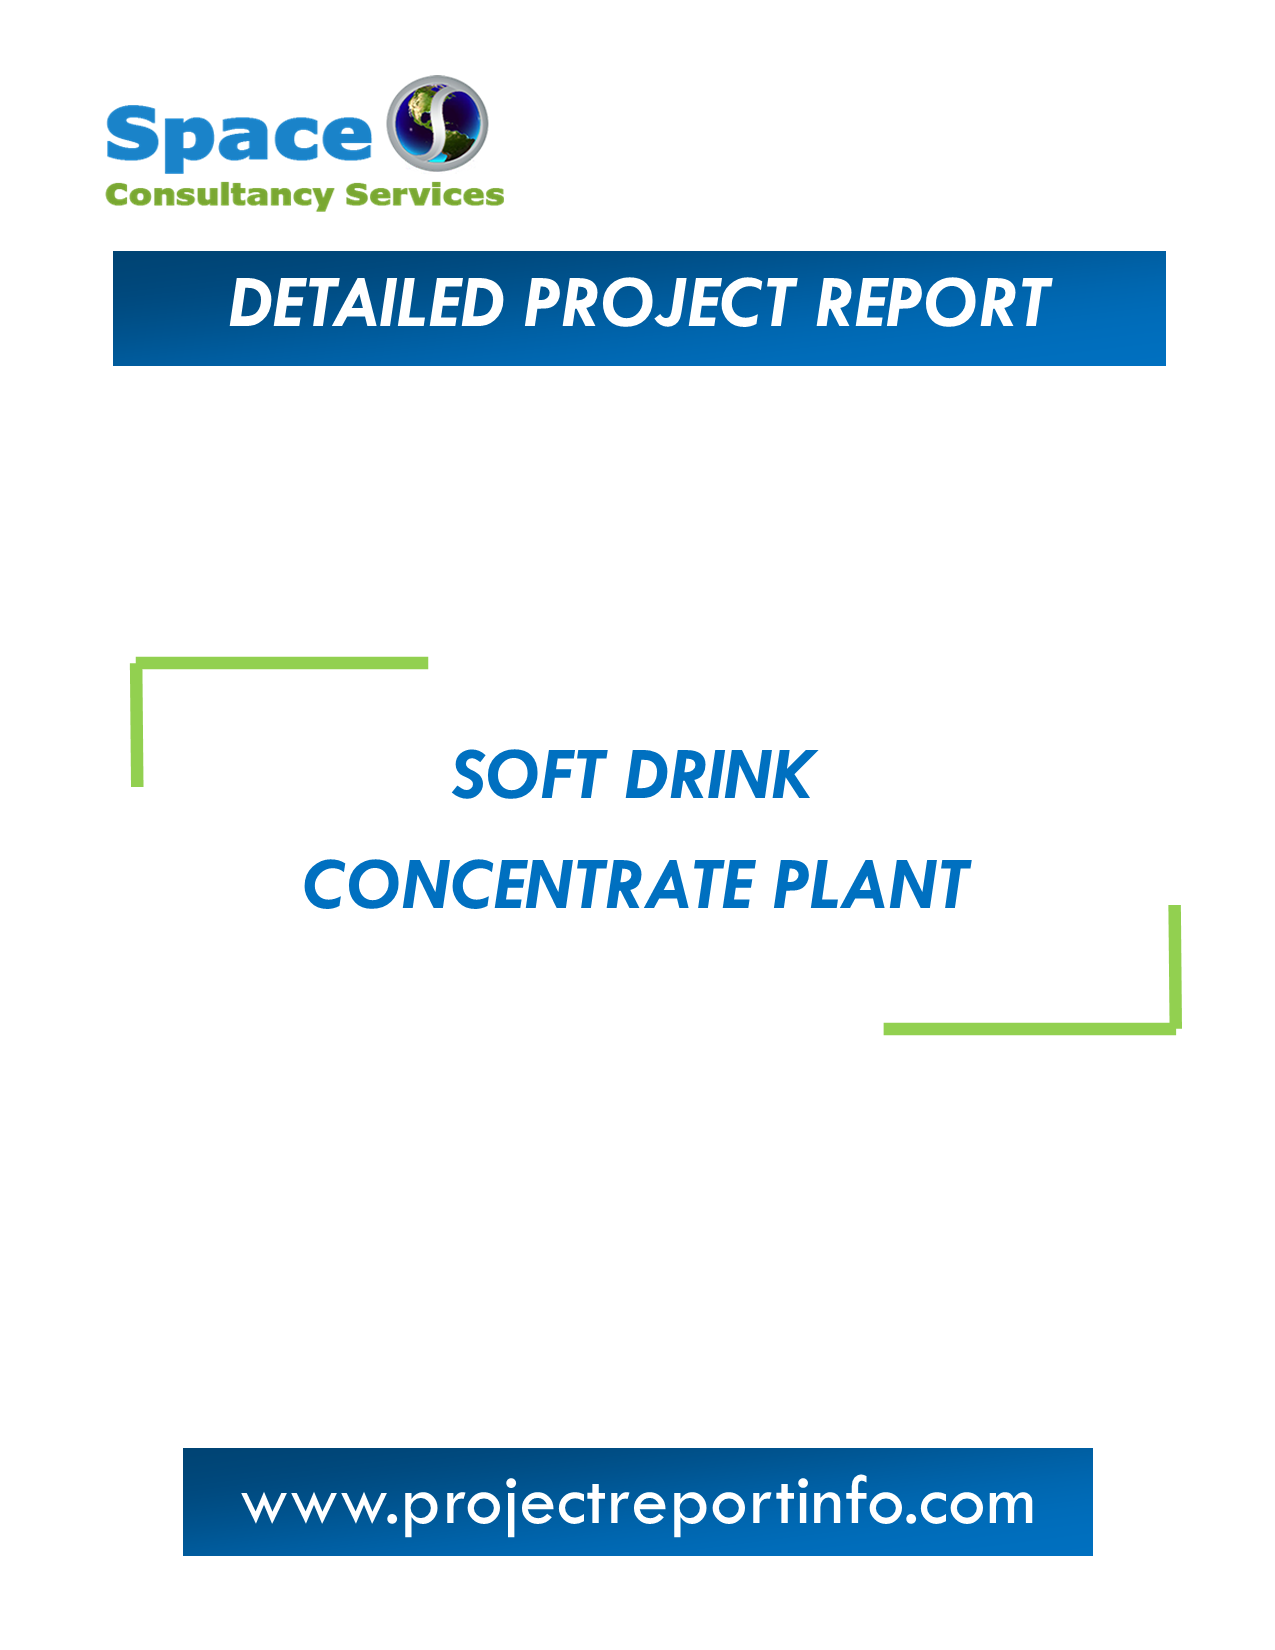 Project Report on Soft Drink Concentrate Plant